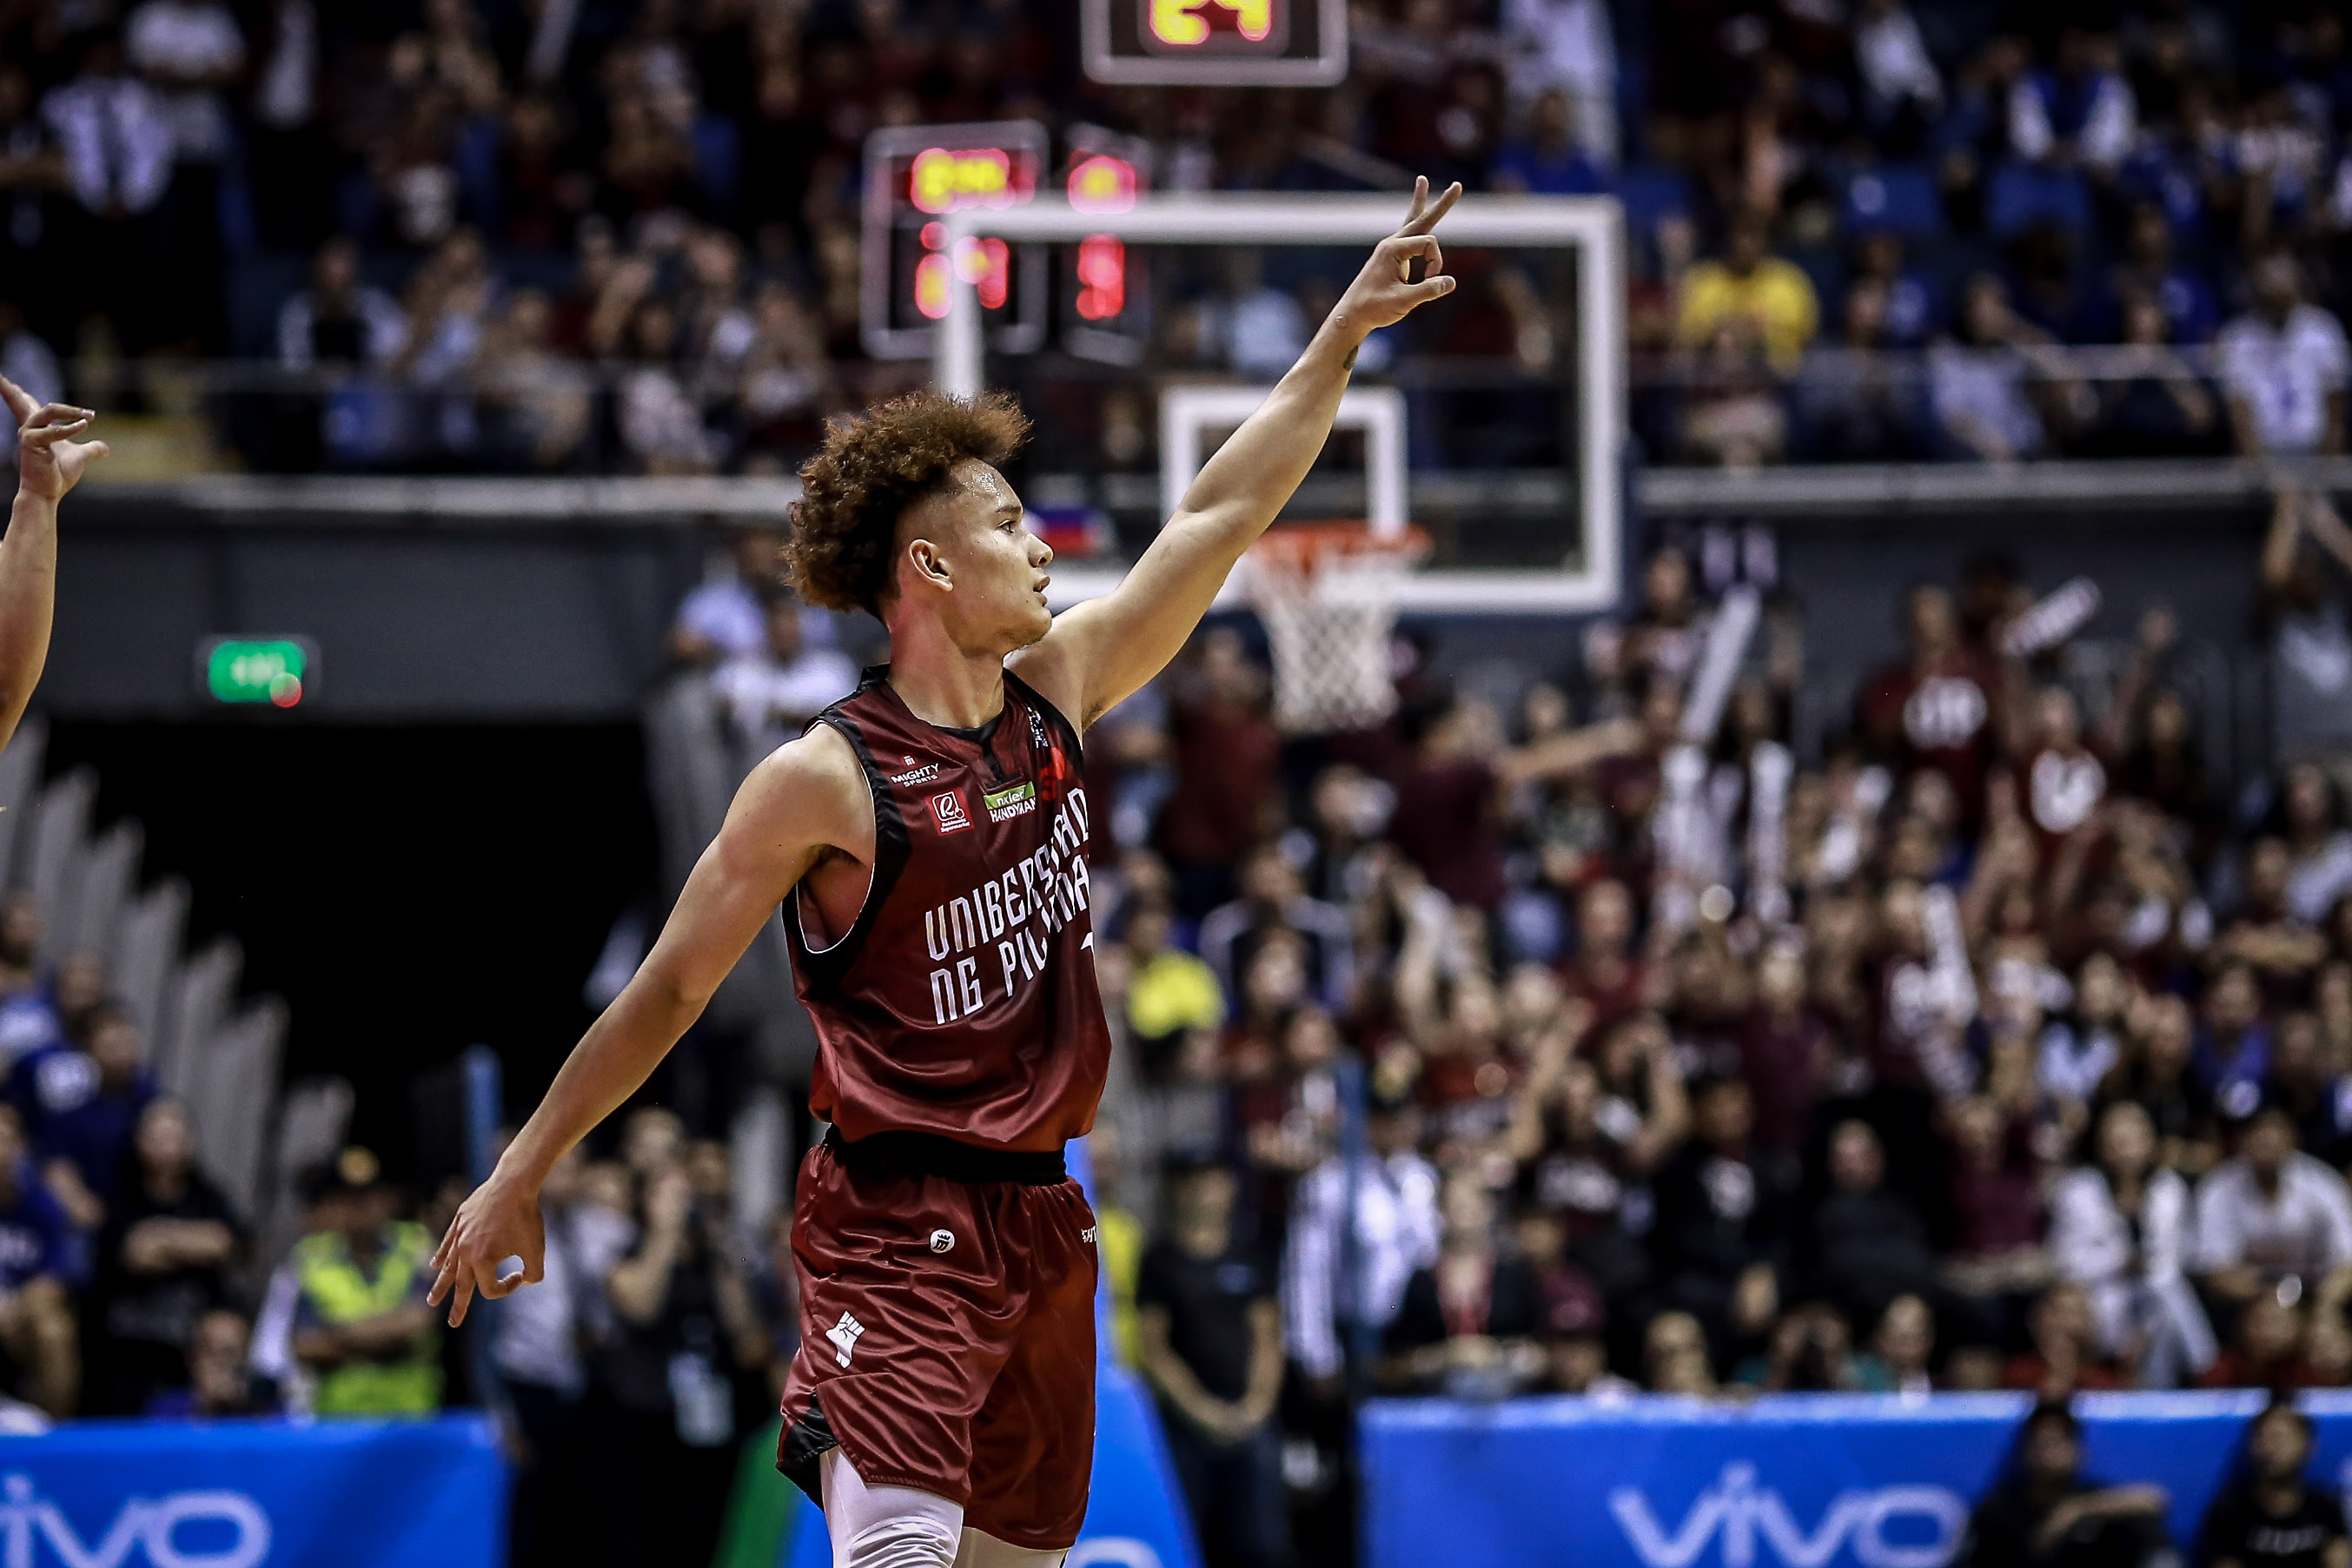 WATCH: No less than a championship for loaded UP Fighting Maroons